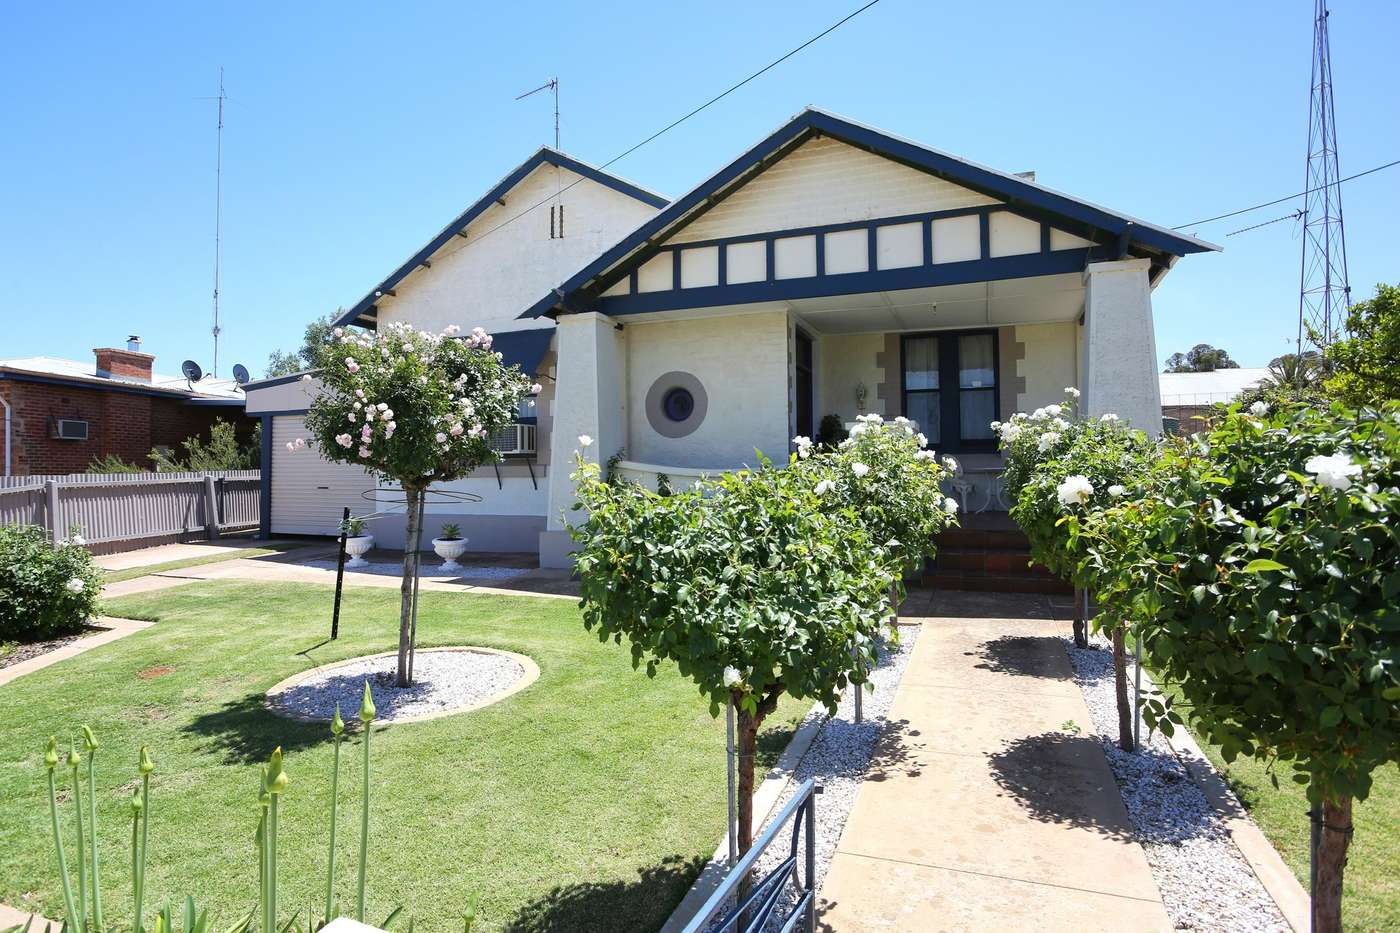 Main view of Homely house listing, 40 Government Road, Spalding, SA 5454